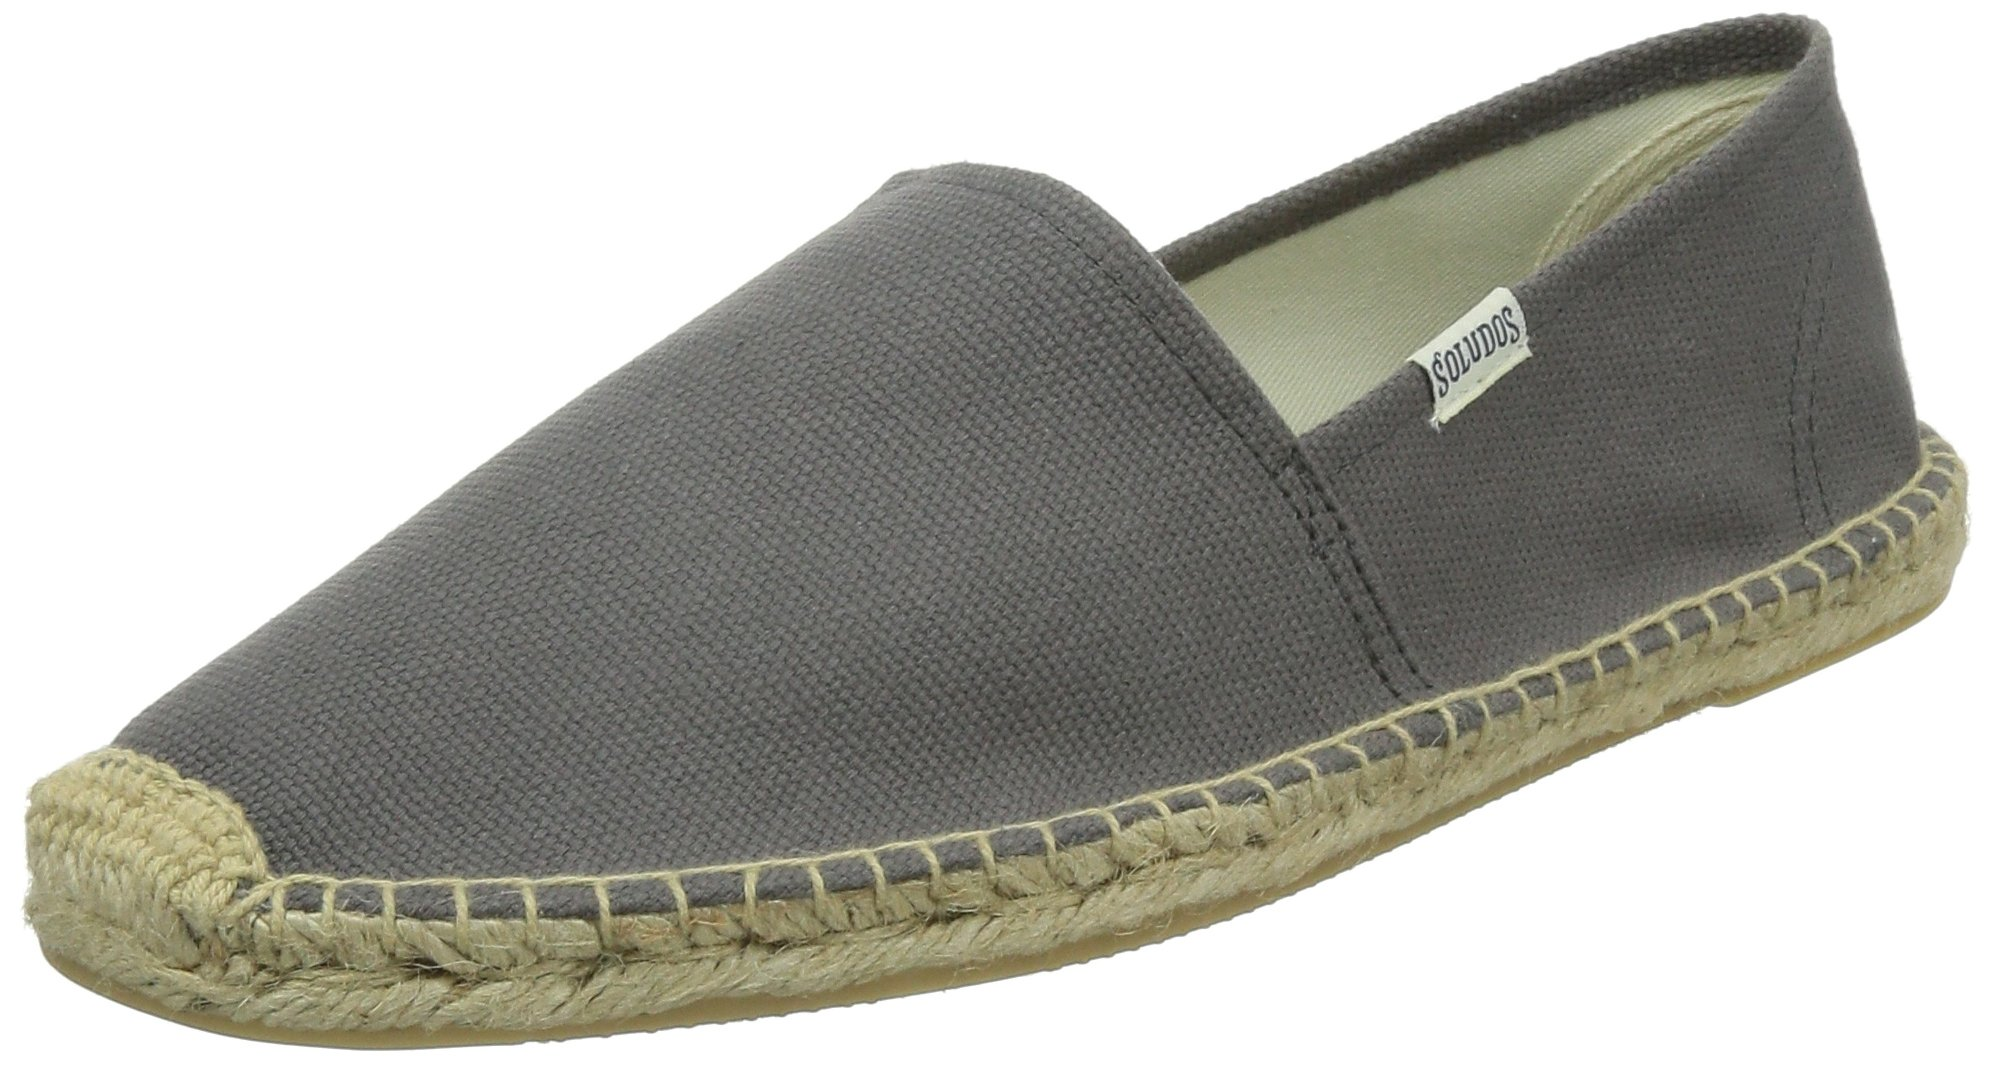 Soludos Men's Solid Original Dali Shoe, Charcoal, 9 D US